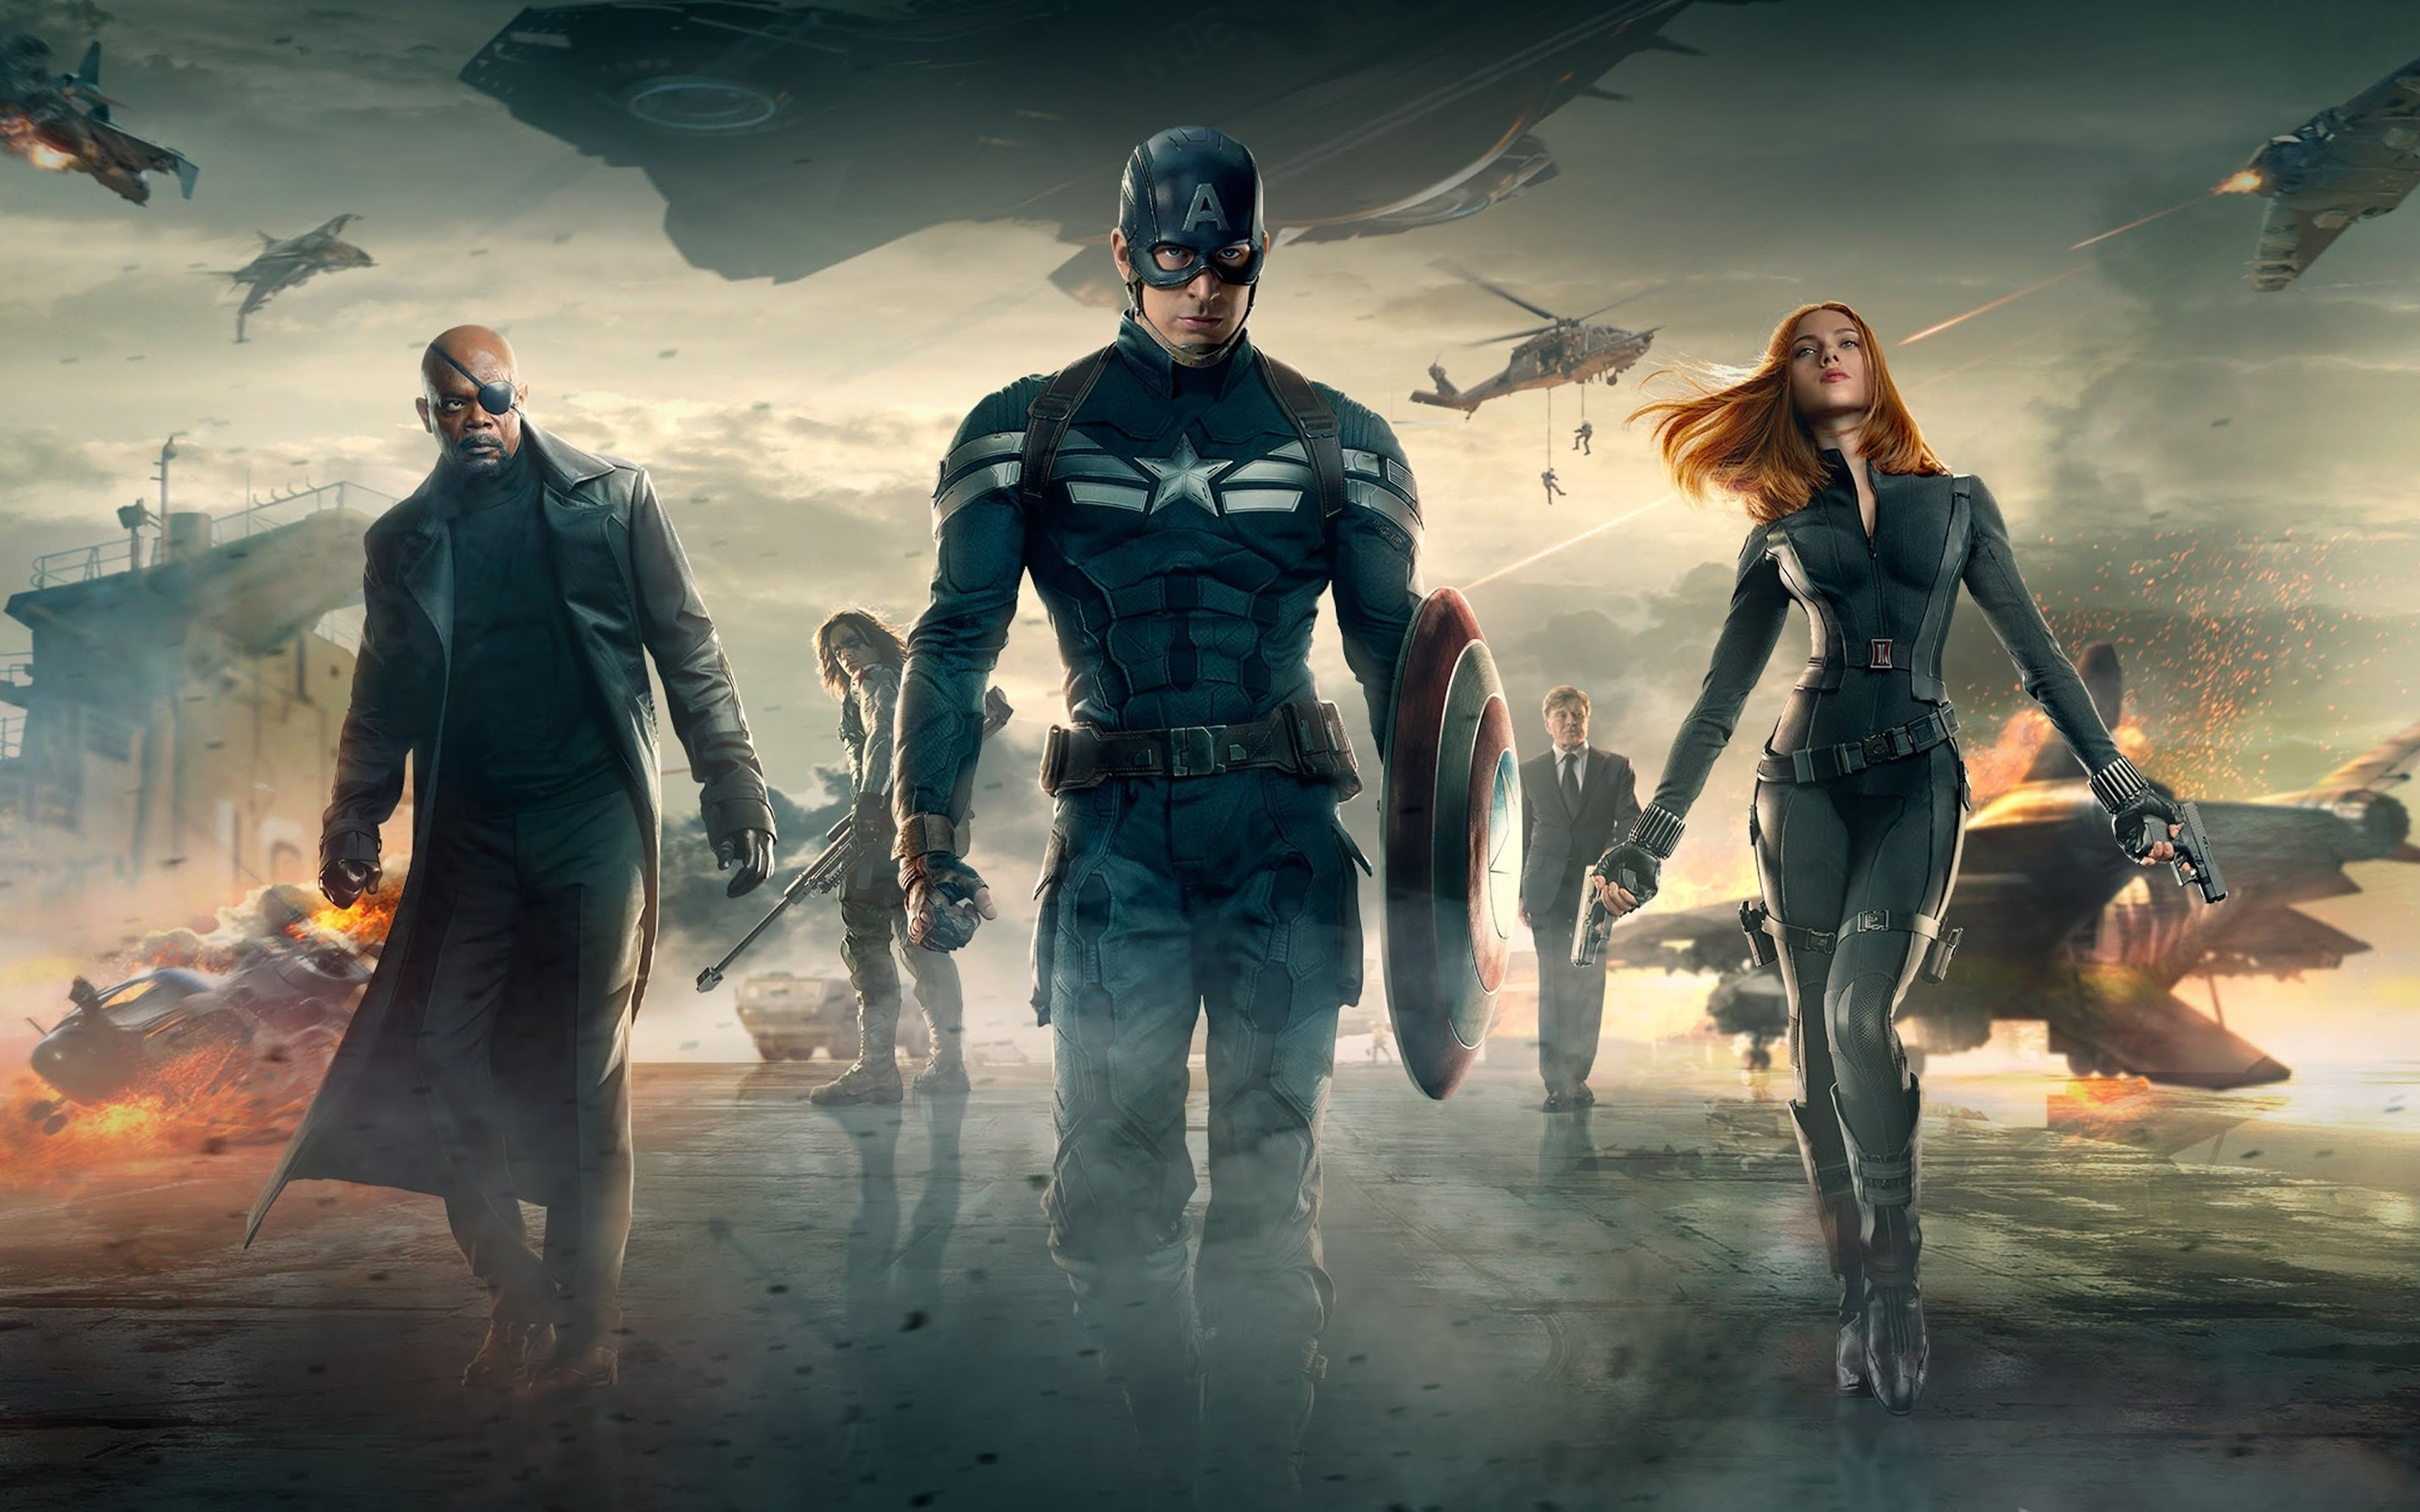 Res: 2880x1800, Captain America: The Winter Soldier Wallpapers